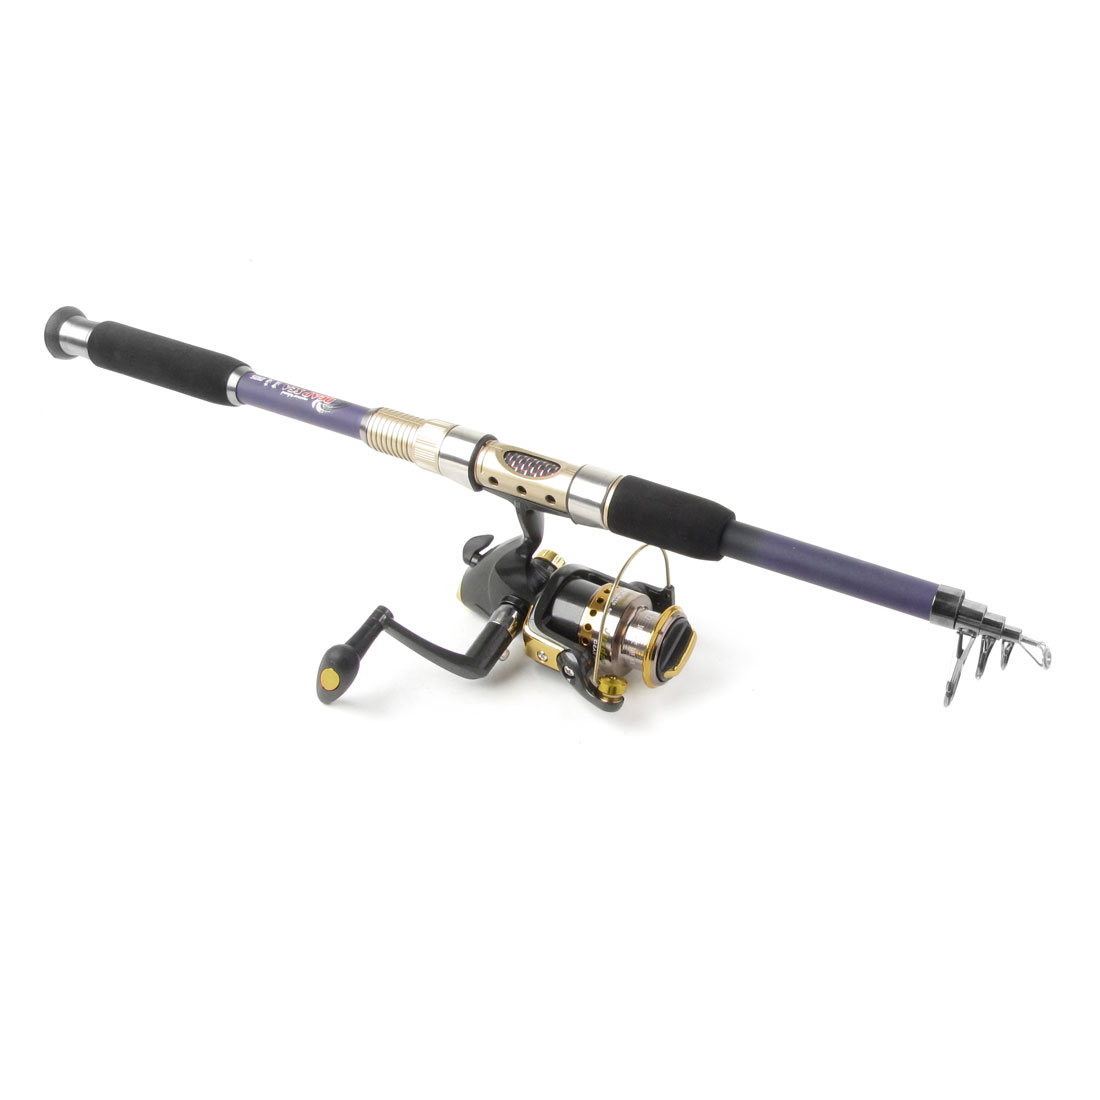 Telescopic 5 Sections 2.1M Fishing Rod Pole + Gear Ratio 5.1 : 1 Spinning Reel